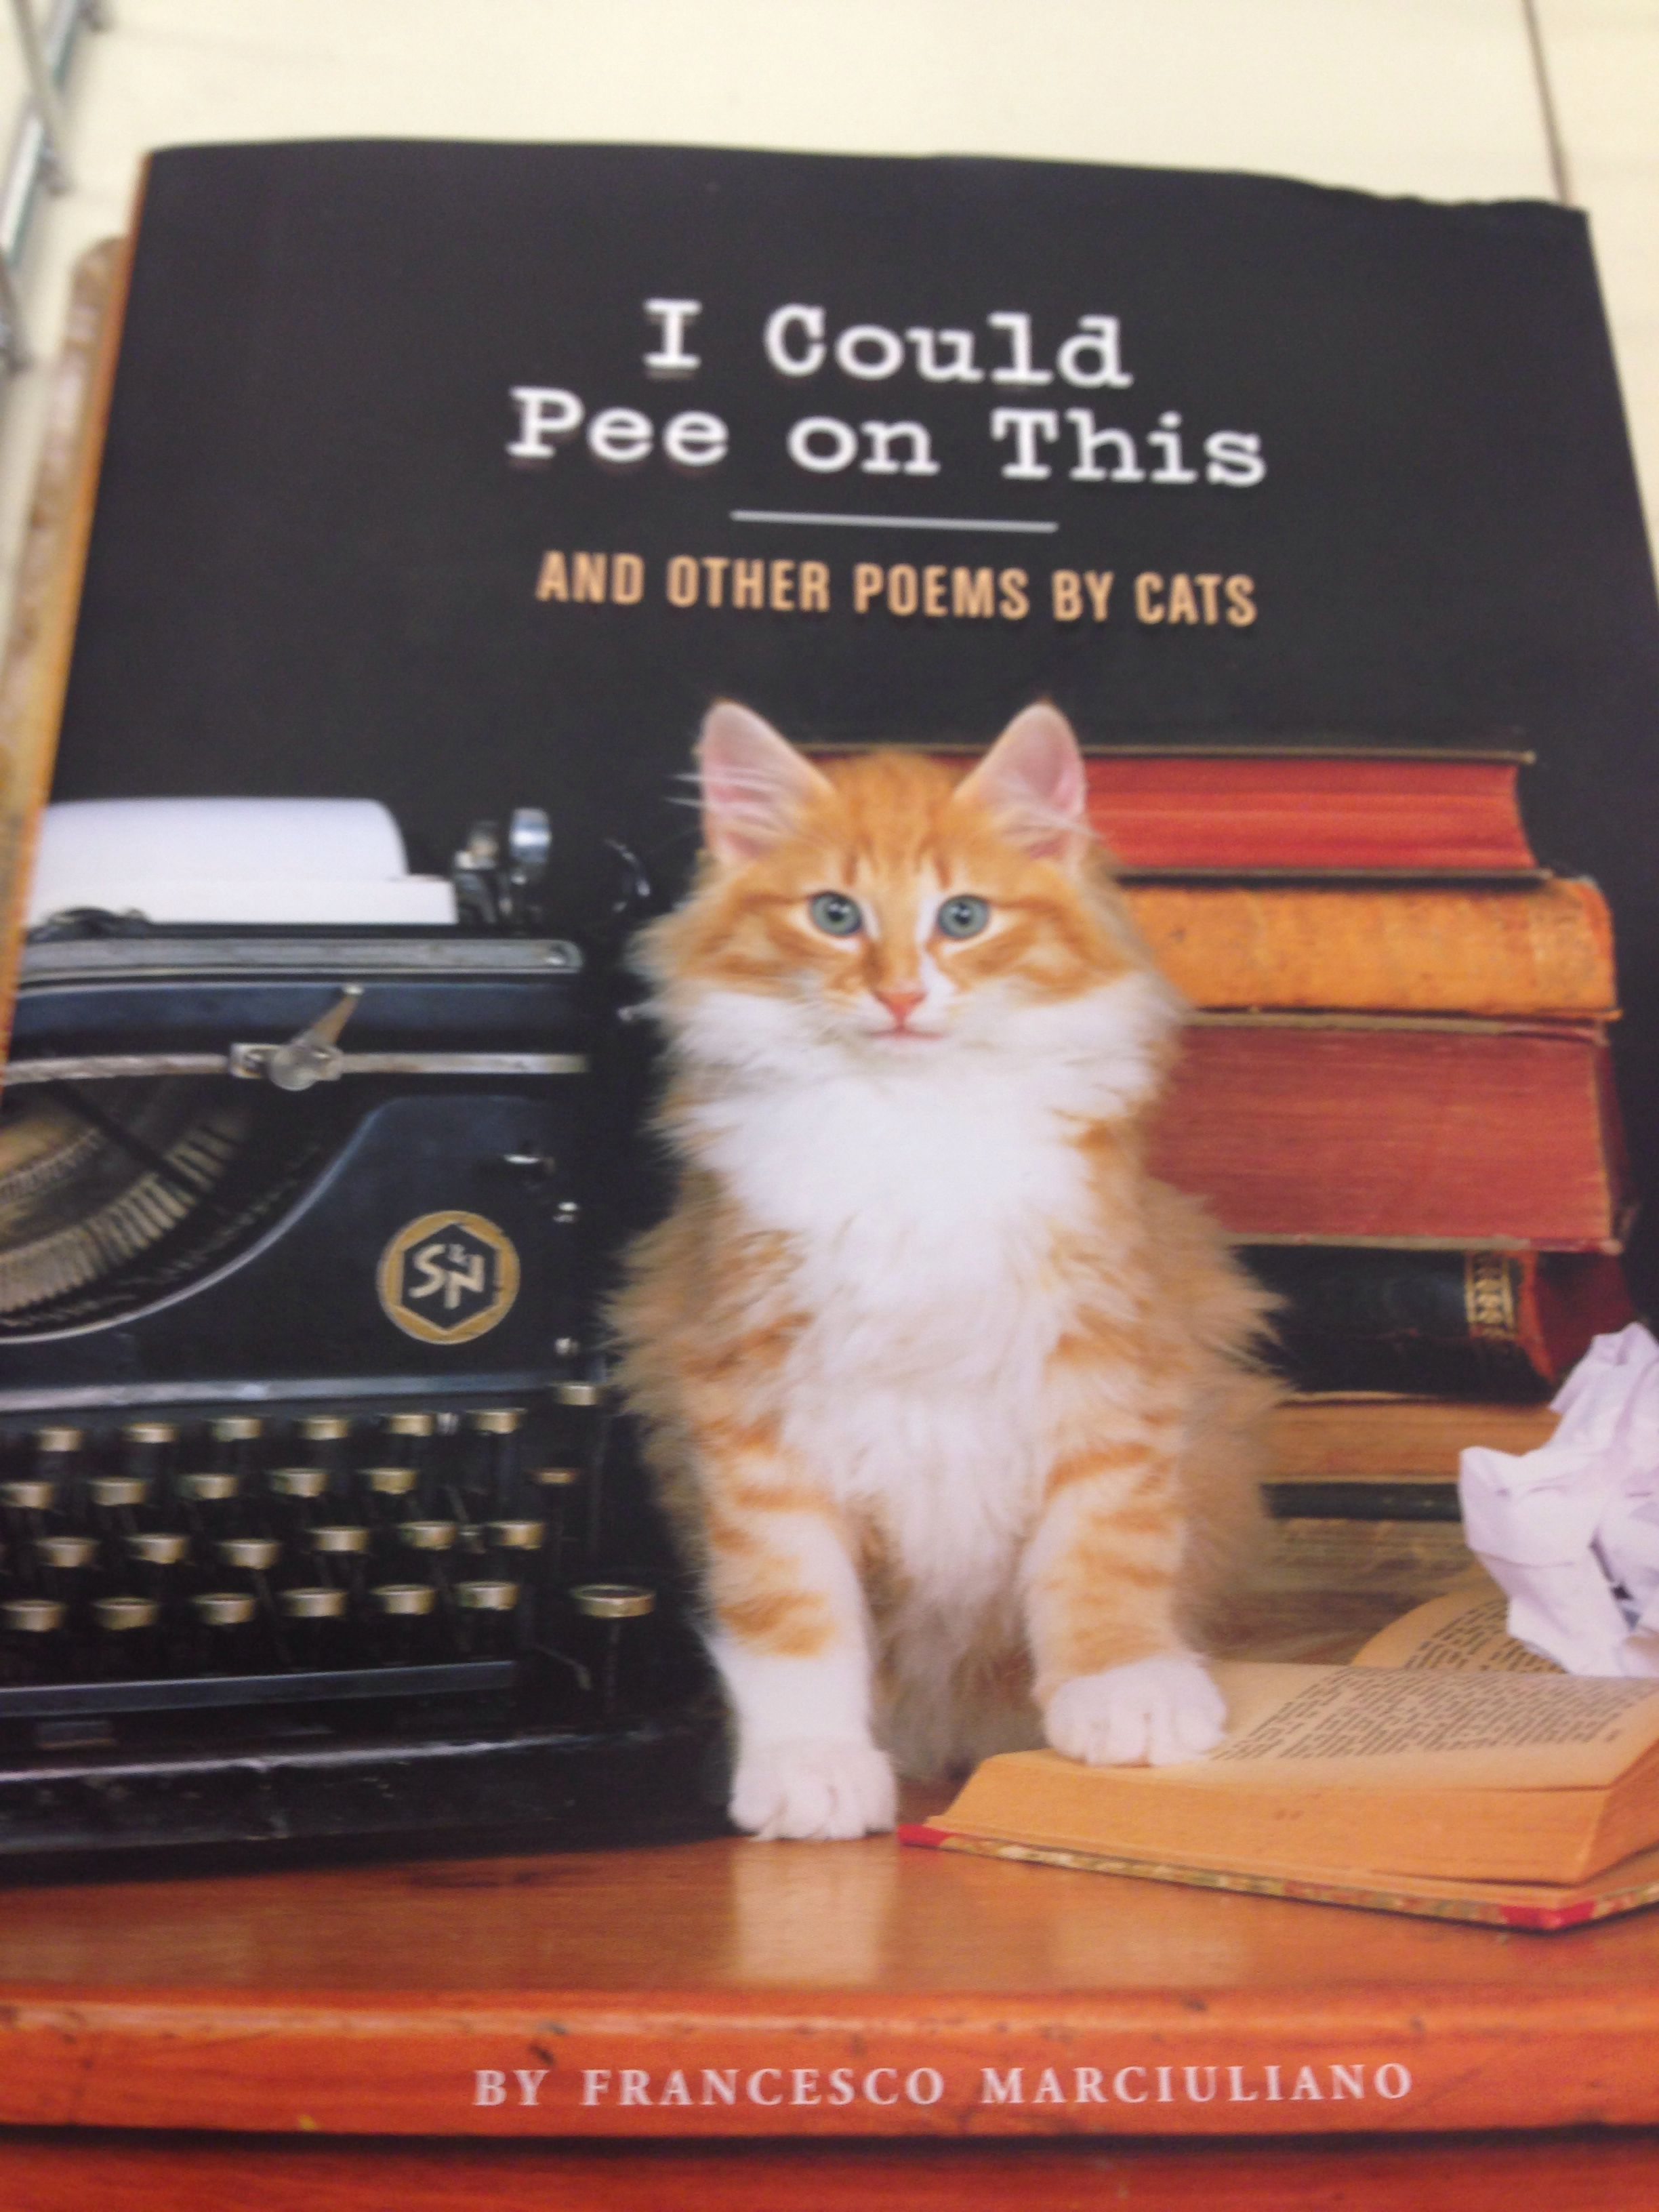 My cat totally ghost wrote this book....she's peed on the